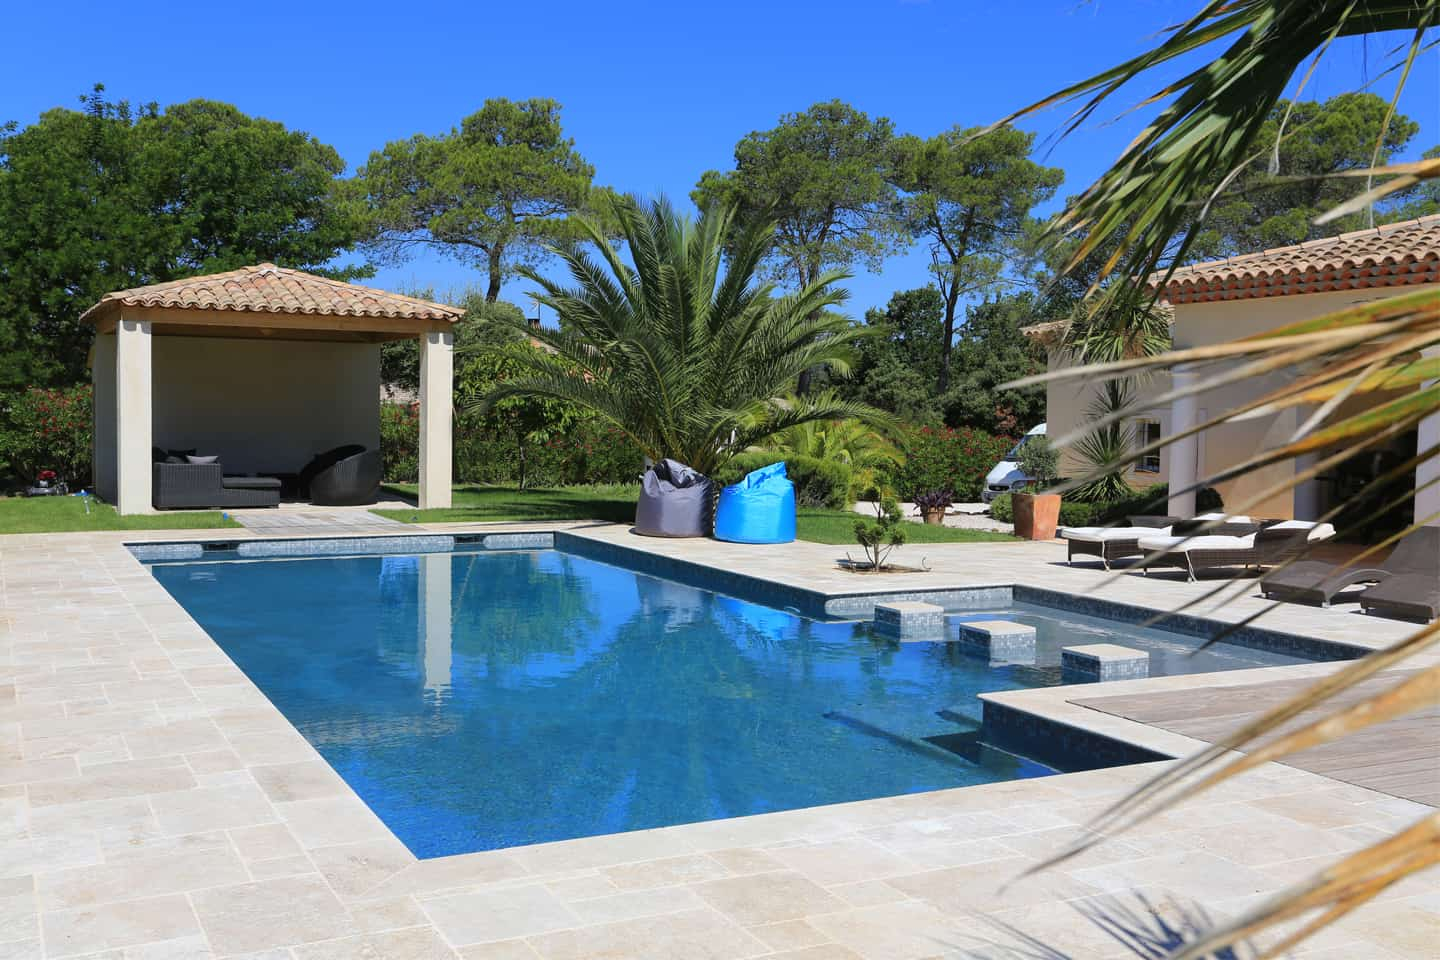 Favori Pool House Piscine En Kit NY81